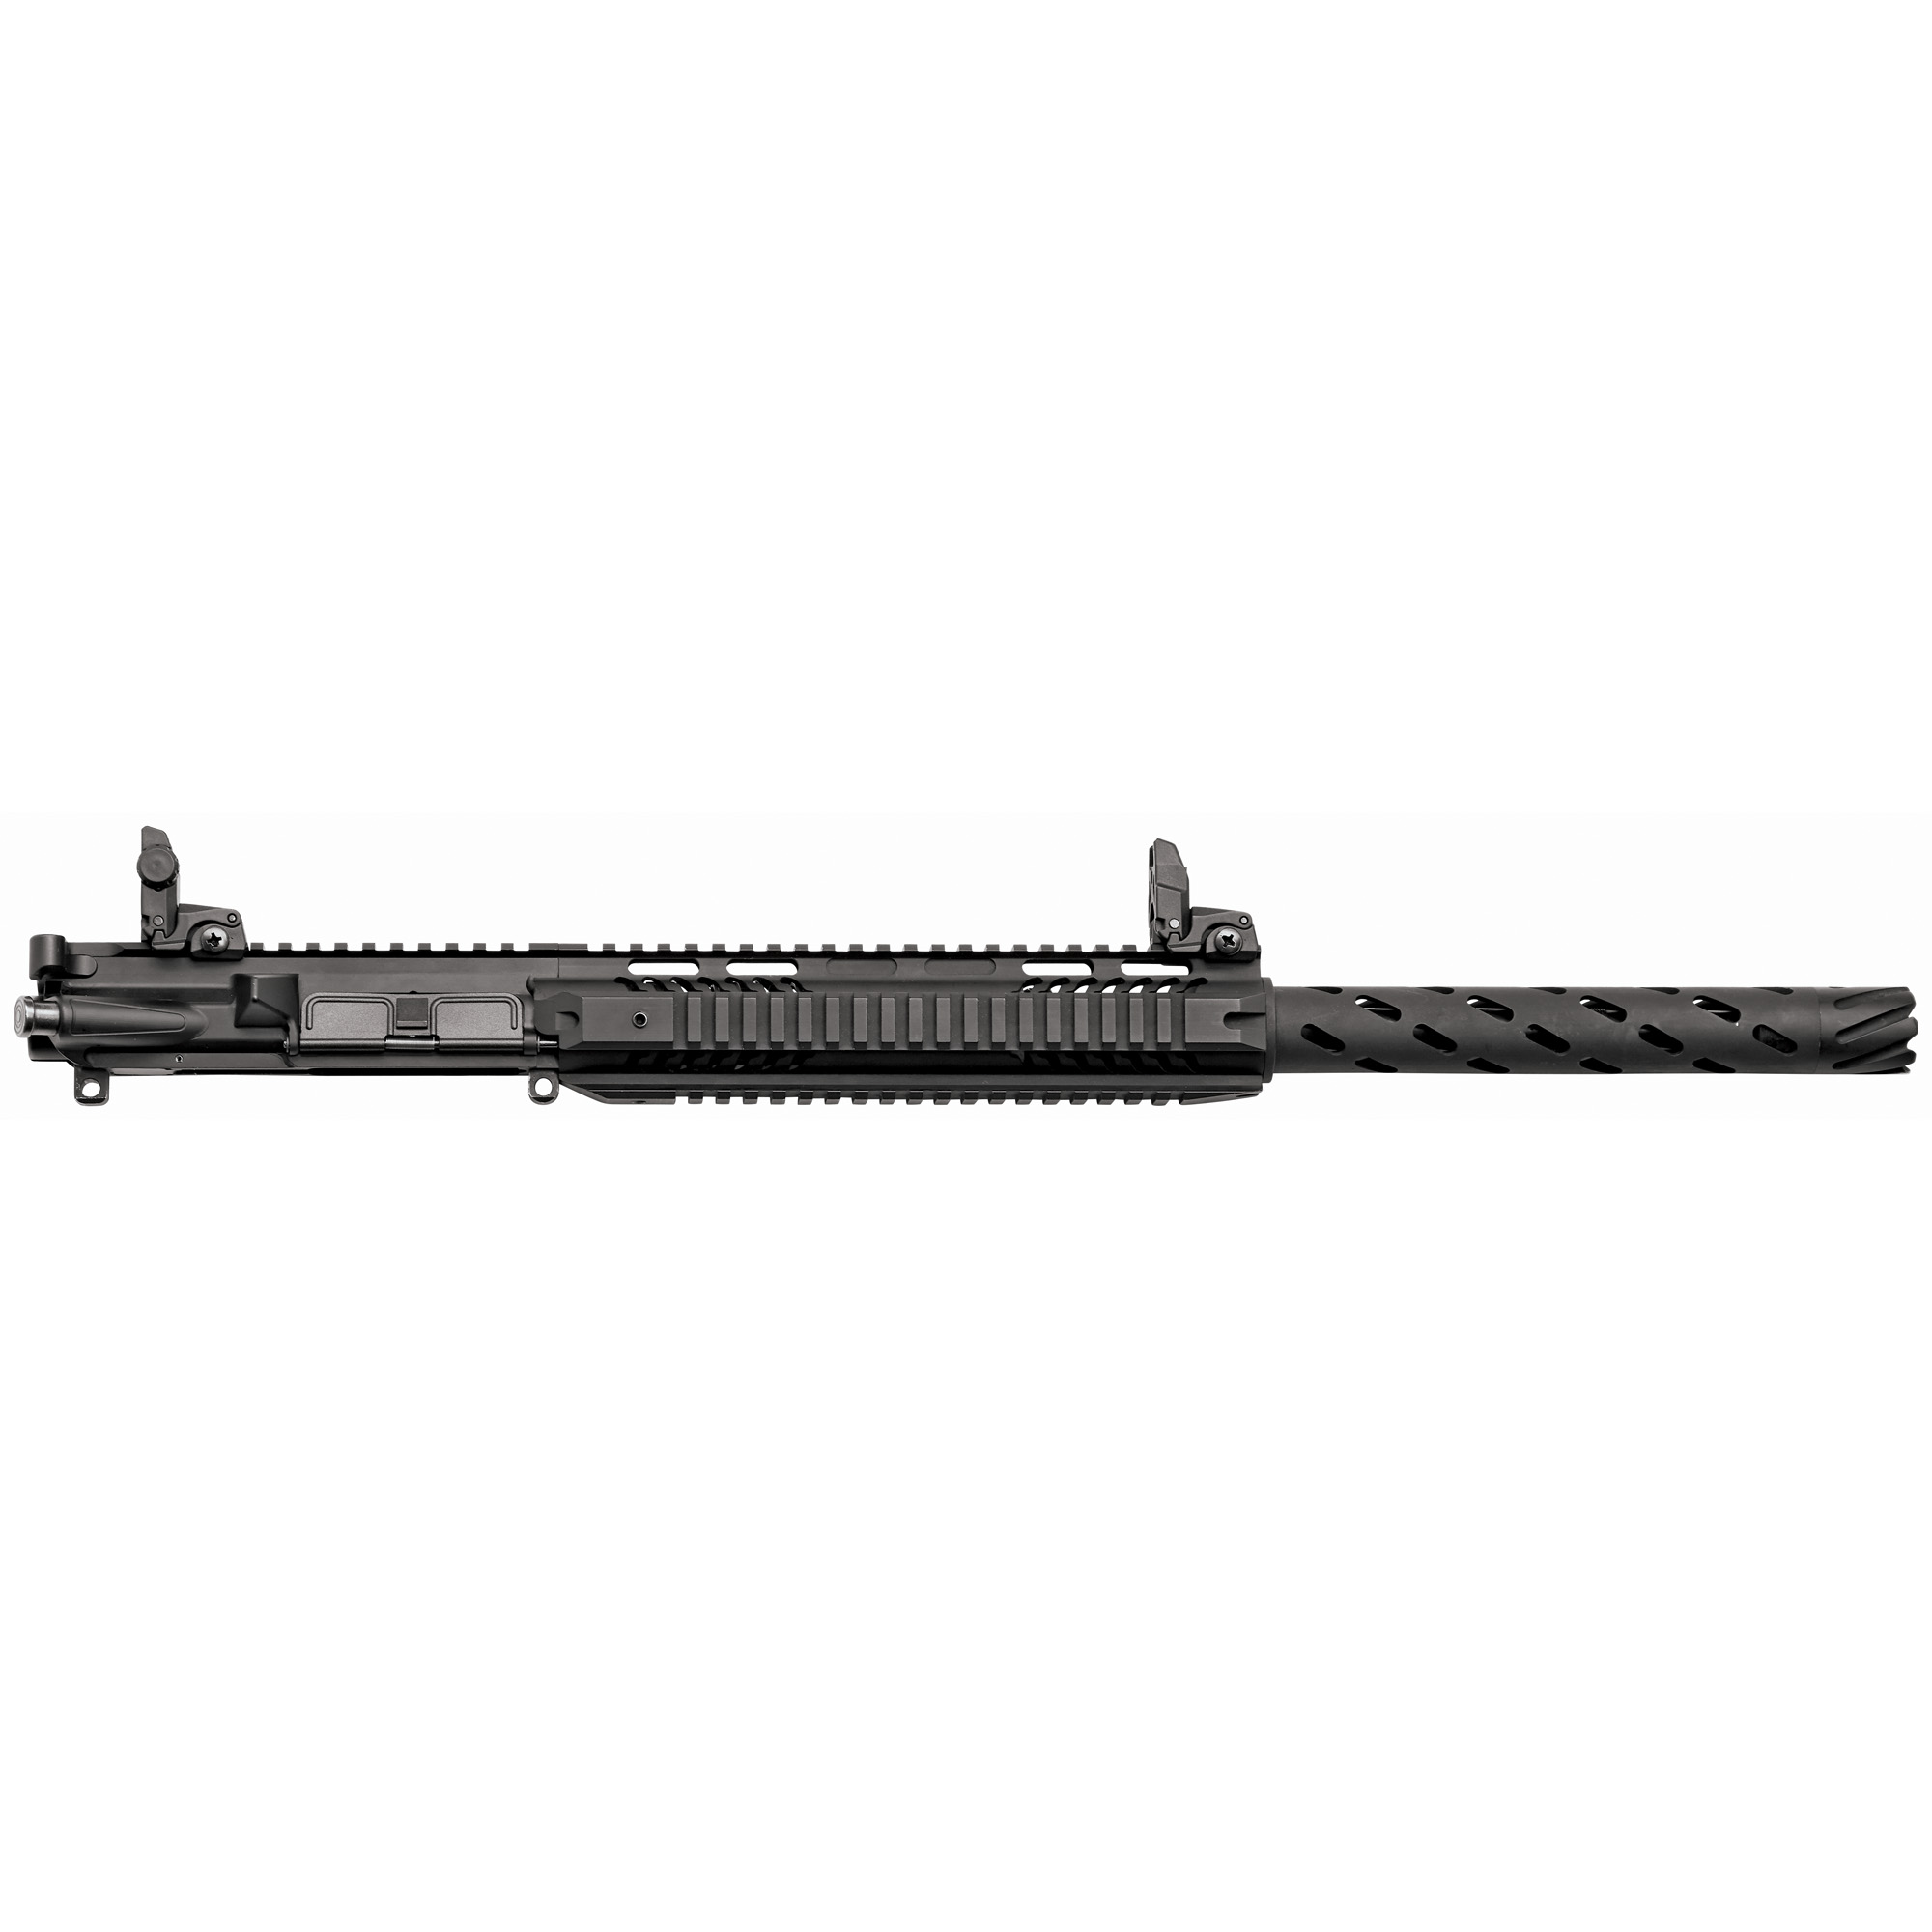 "The Charles Daly AR .410 Upper allows any AR-15 to be converted to a .410 shotgun. The CD .410 Upper features a 19in barrel"" chambered in 2.5in .410 bore. It has front and rear flip up sights"" picatinny quad rail forend and comes with a 5 round magazine. IMPORTANT: This upper works with mil-spec lower only. MUST USE CARBINE BUFFER TUBE. Upper includes buffer that must be used with carbine buffer spring for proper function. Failure to shoot without carbine buffer tube and provided buffer can cause damage to upper and lower. Overall cartridge length must be 2.29inches or less for proper function."